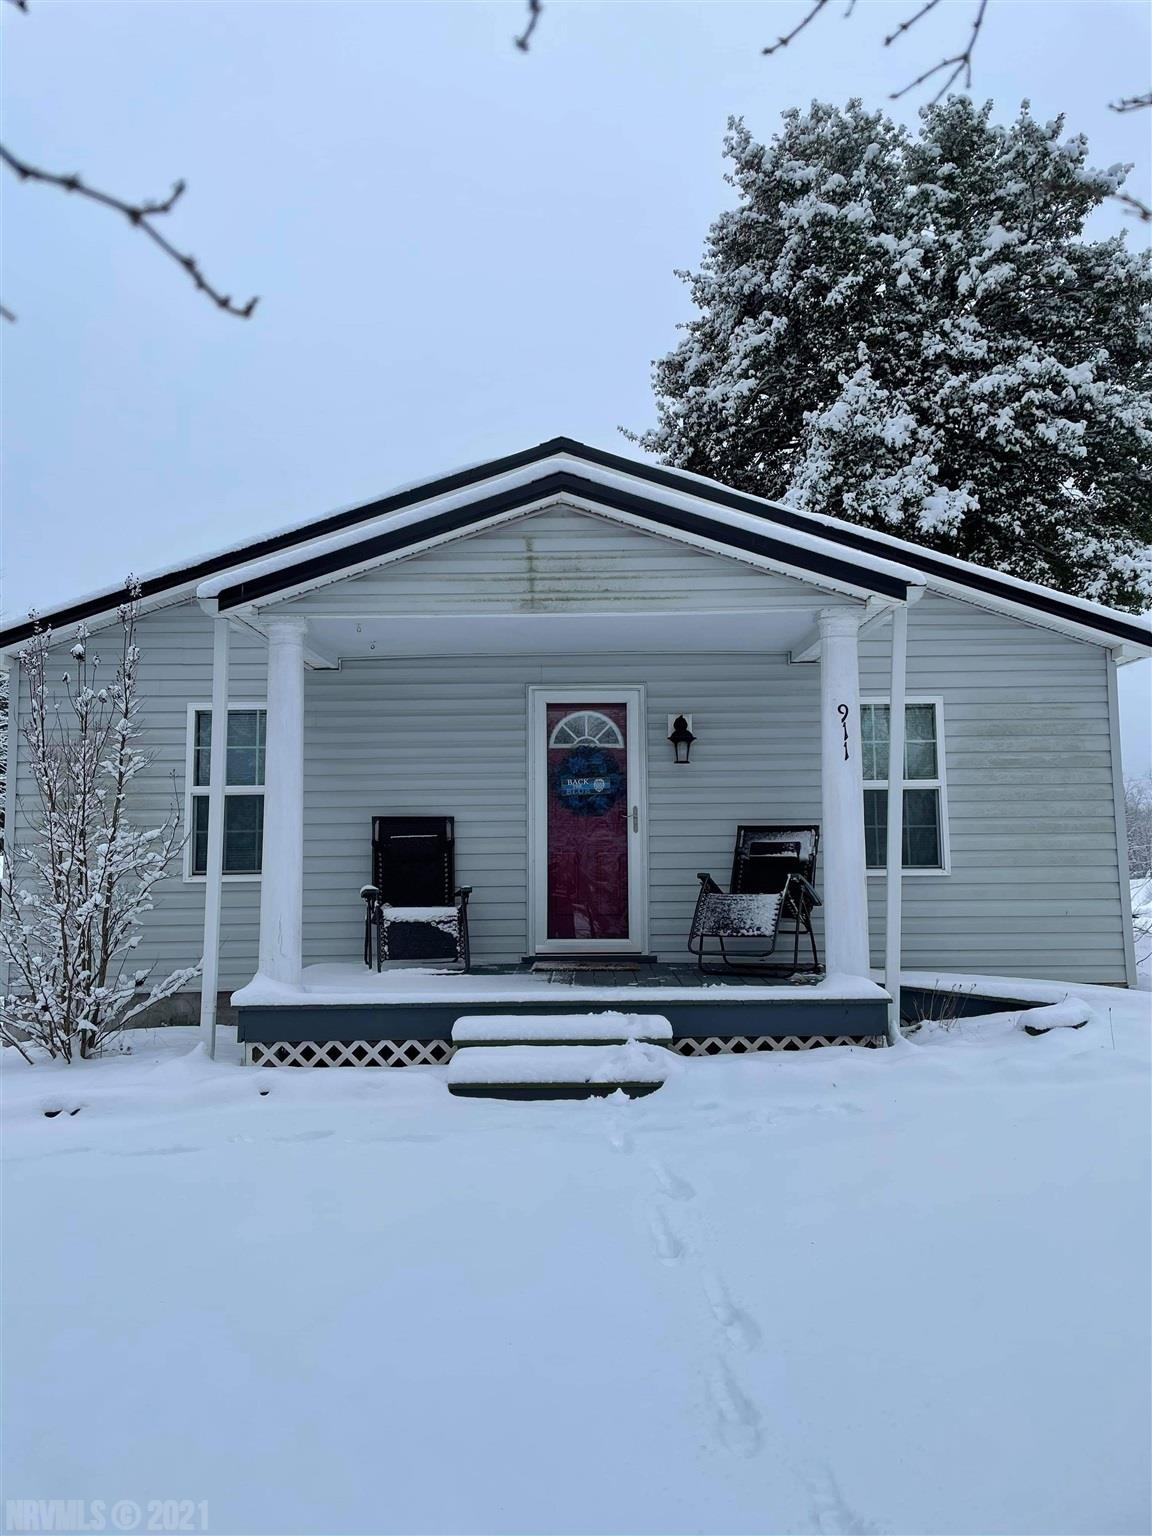 Are you looking for a nice 3 bedroom 2 bath house in Radford, here you go. Conveniently located and minutes to anything you could need! It has tons of charm and is located on a corner lot! Hurry and schedule a showing this one definitely won't last!!